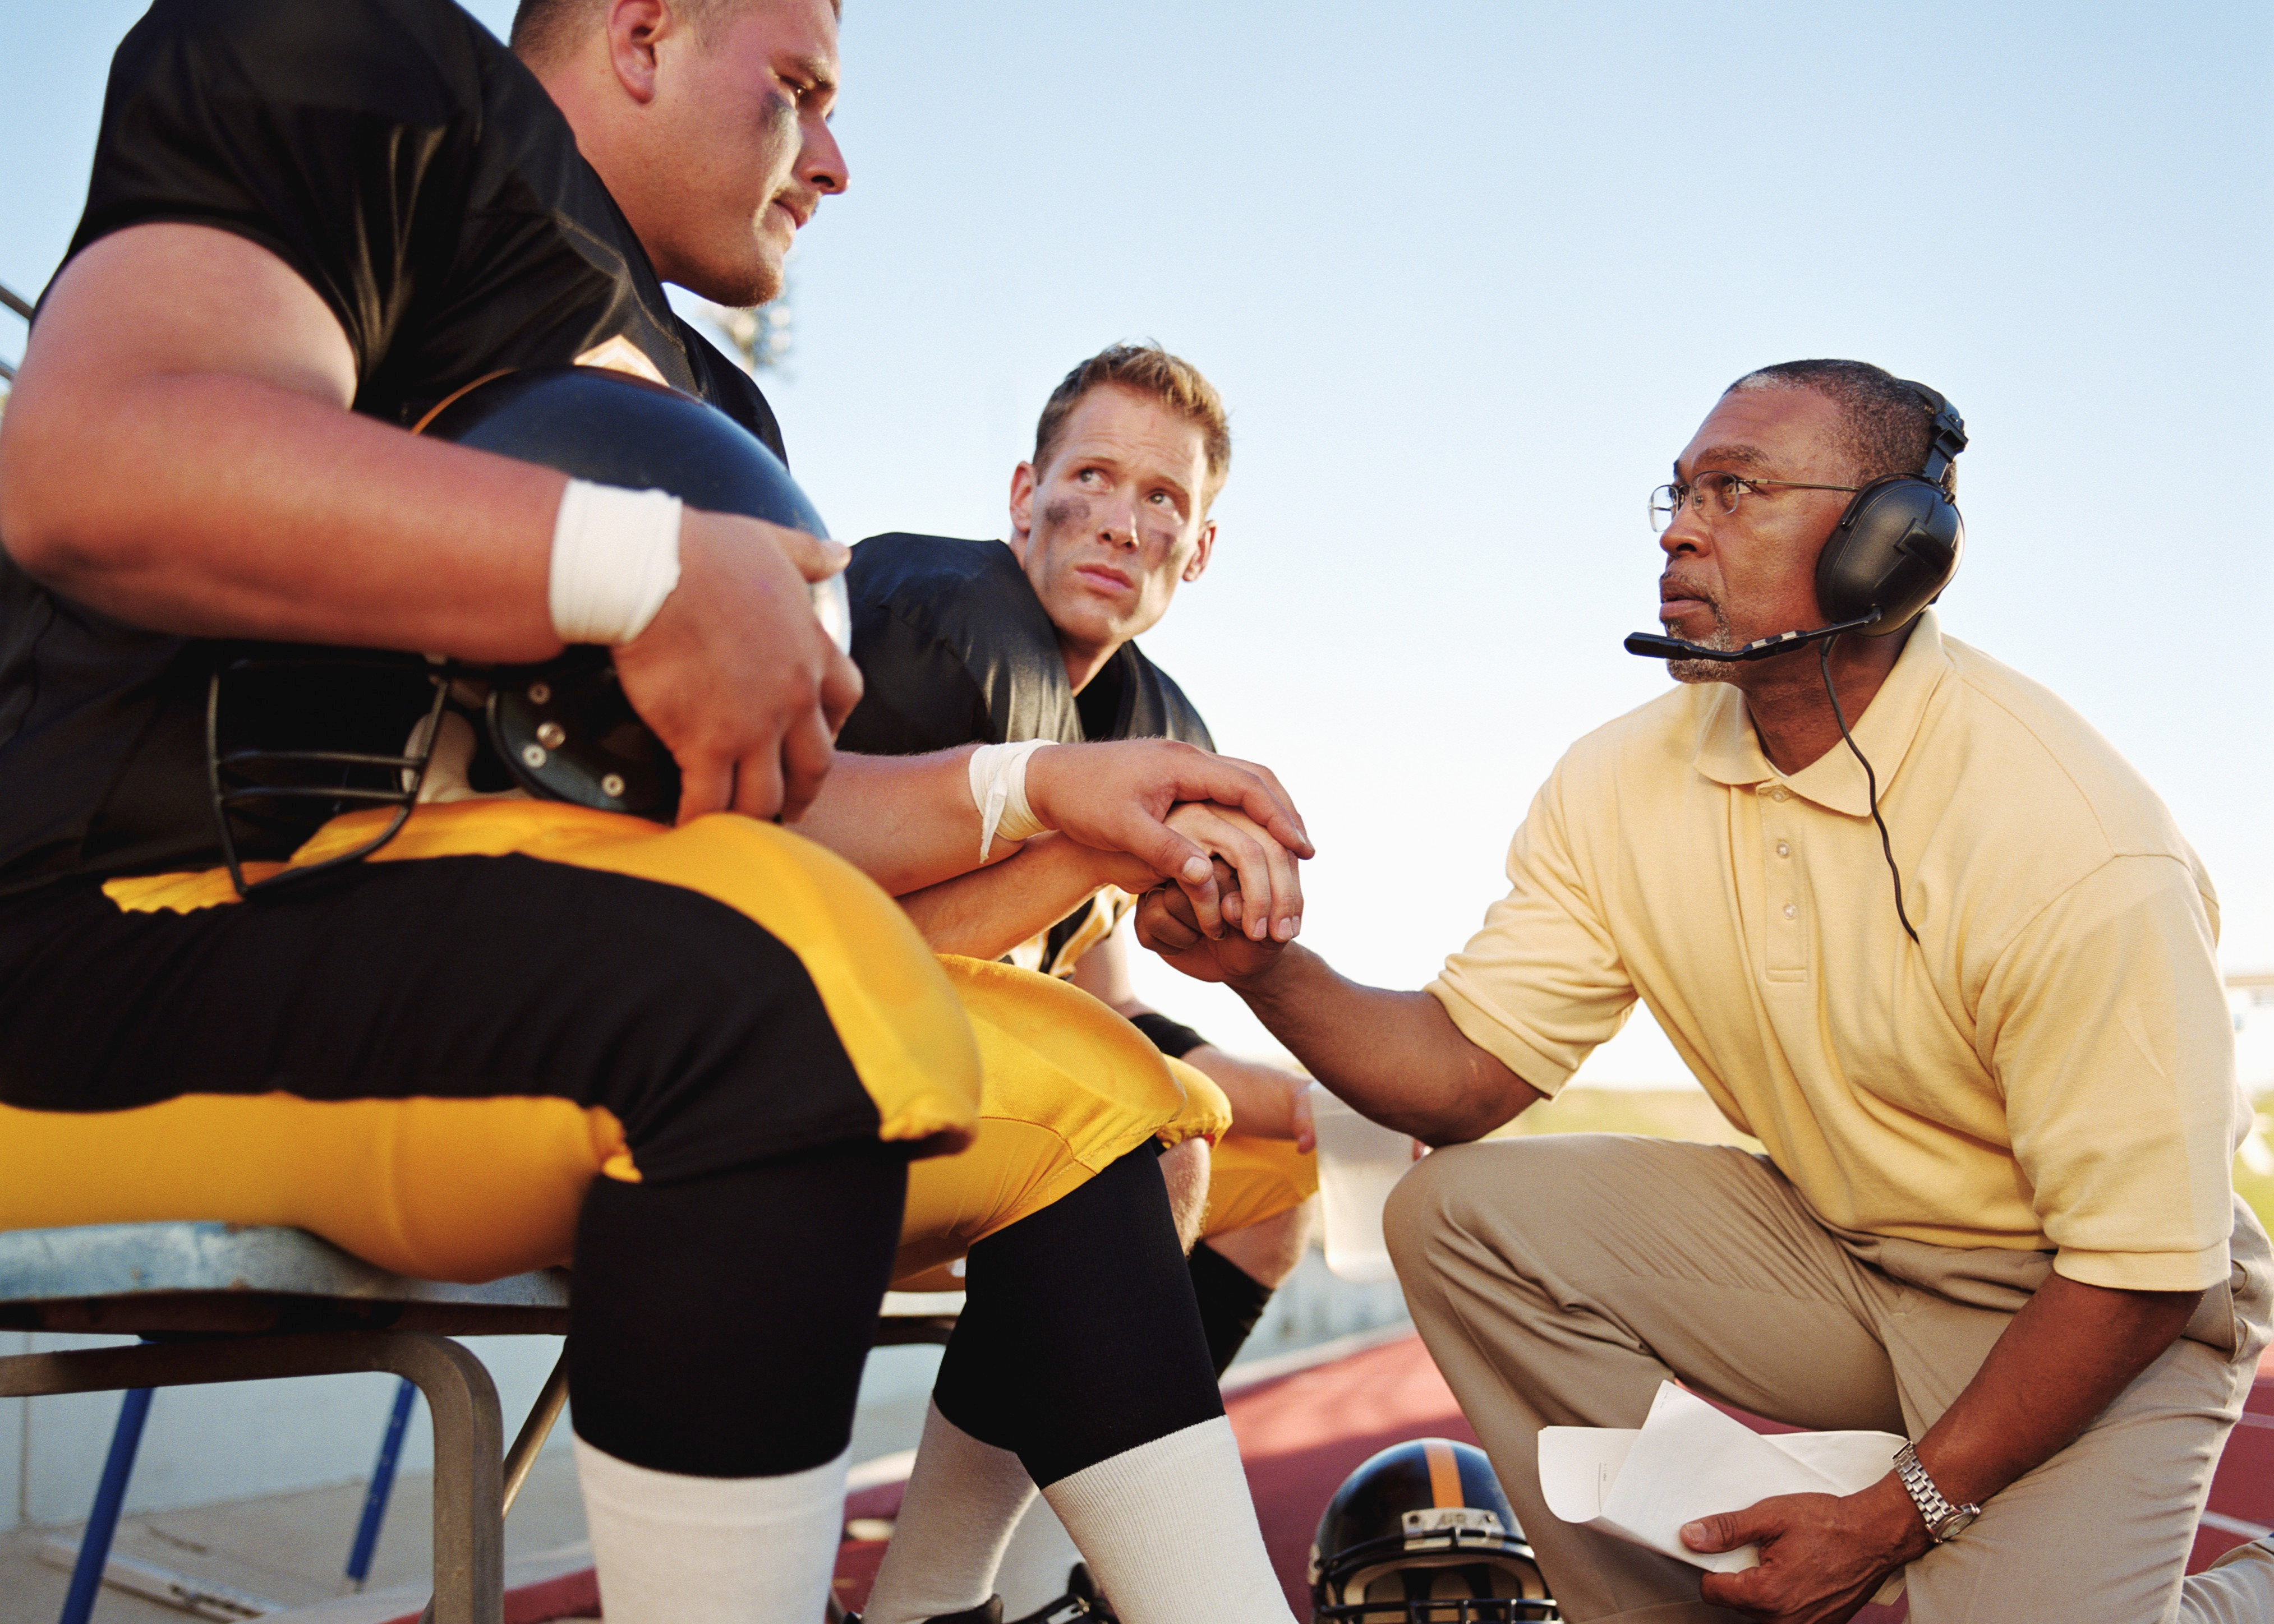 Dedicated coach supports his athlete as he struggles with his mental health during a big game